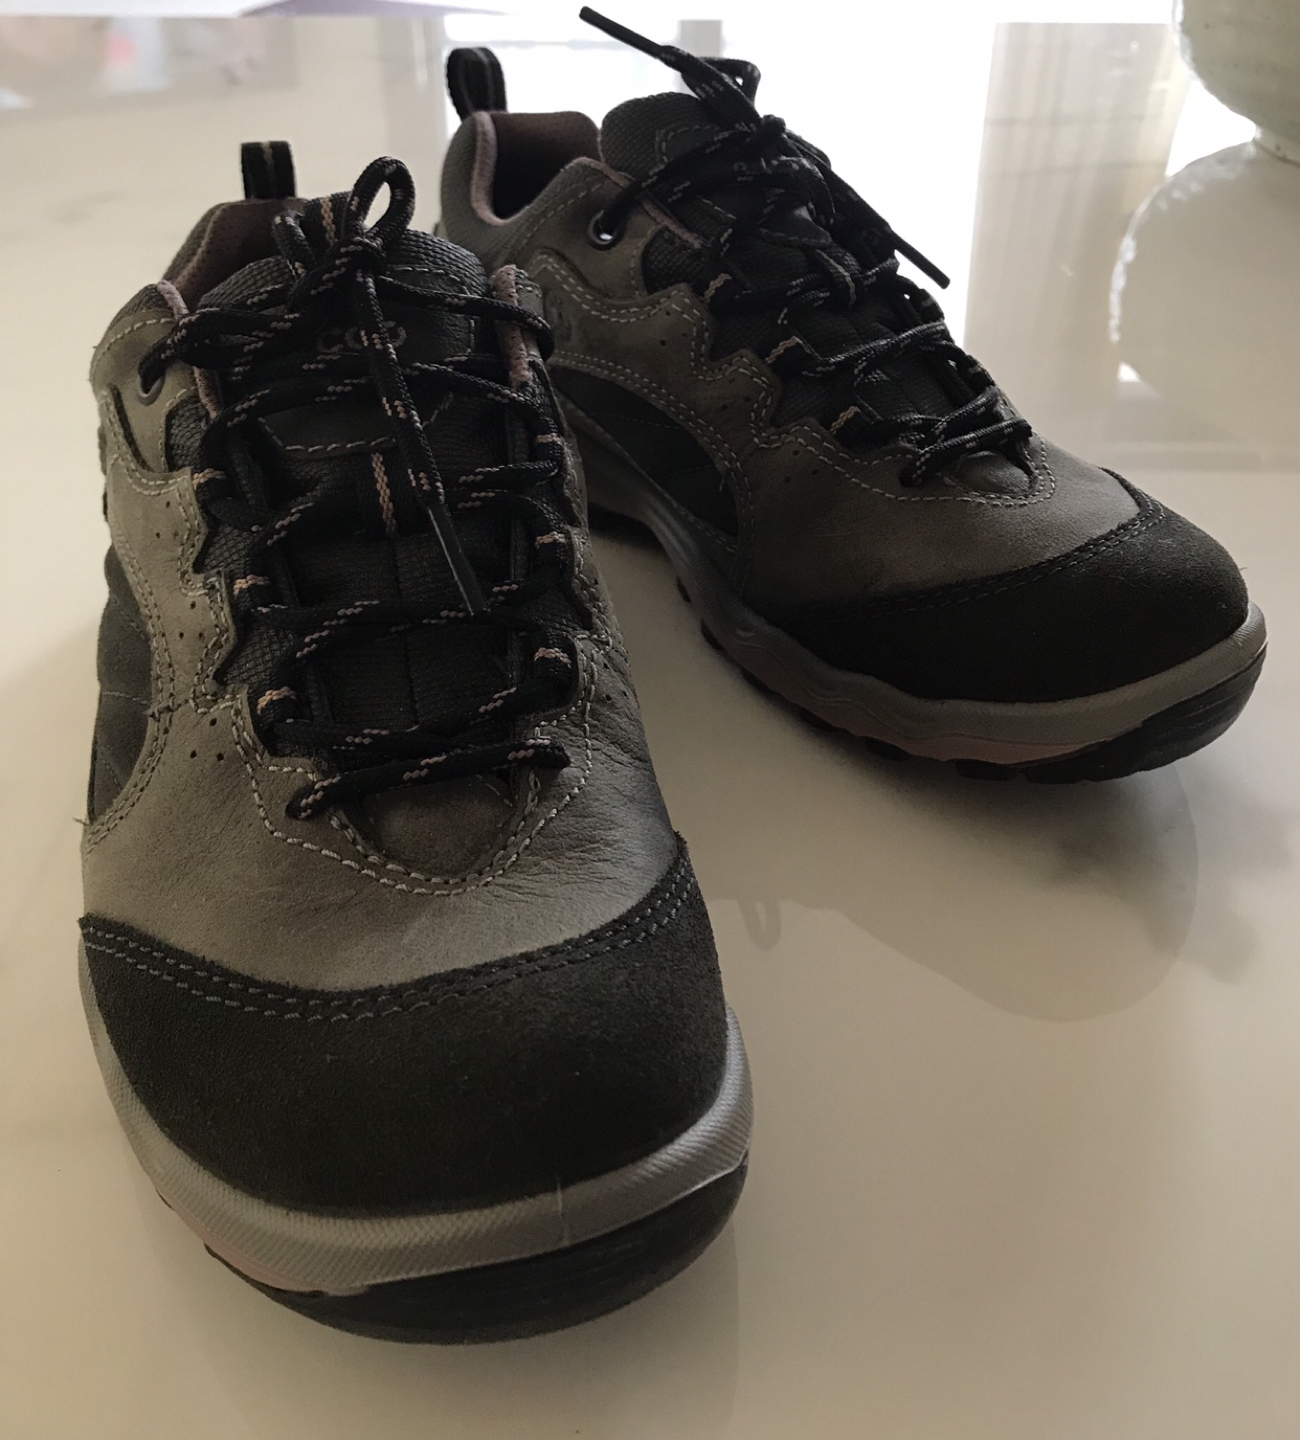 Ecco'  Tracking Shoes (37,240mm)